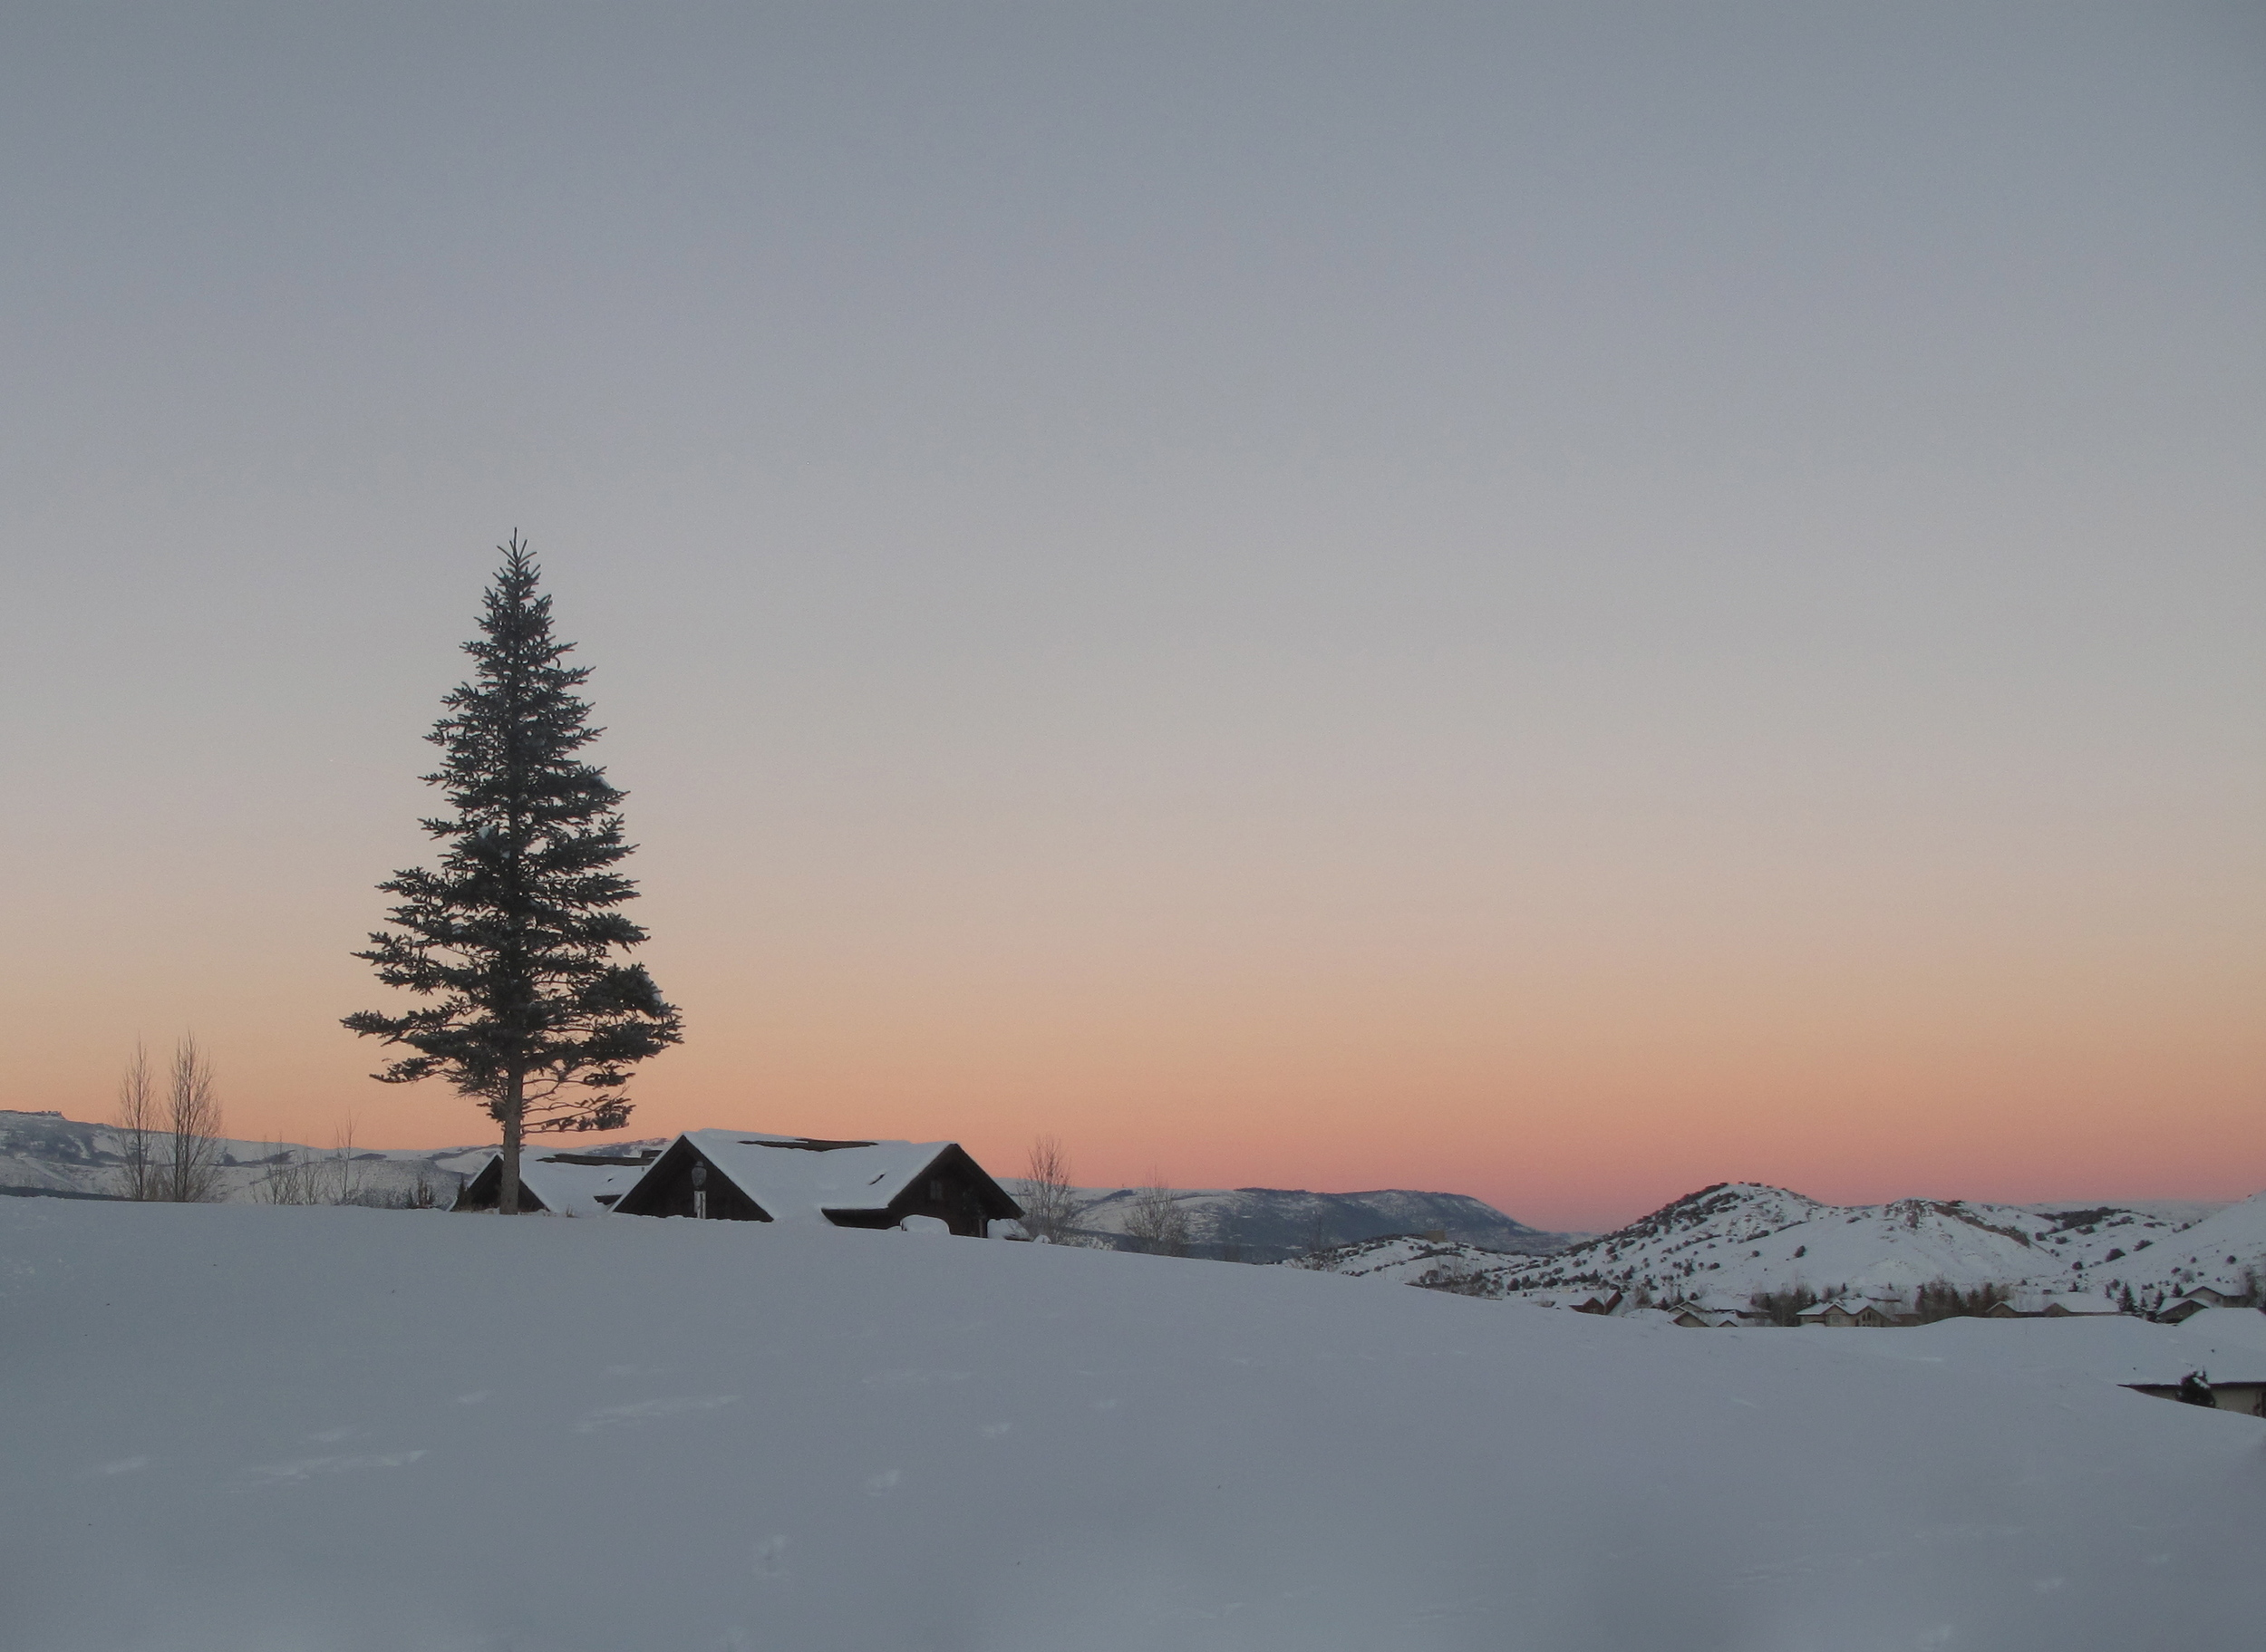 Colorado snow and sunset on a hill with a wooden house and pine tree